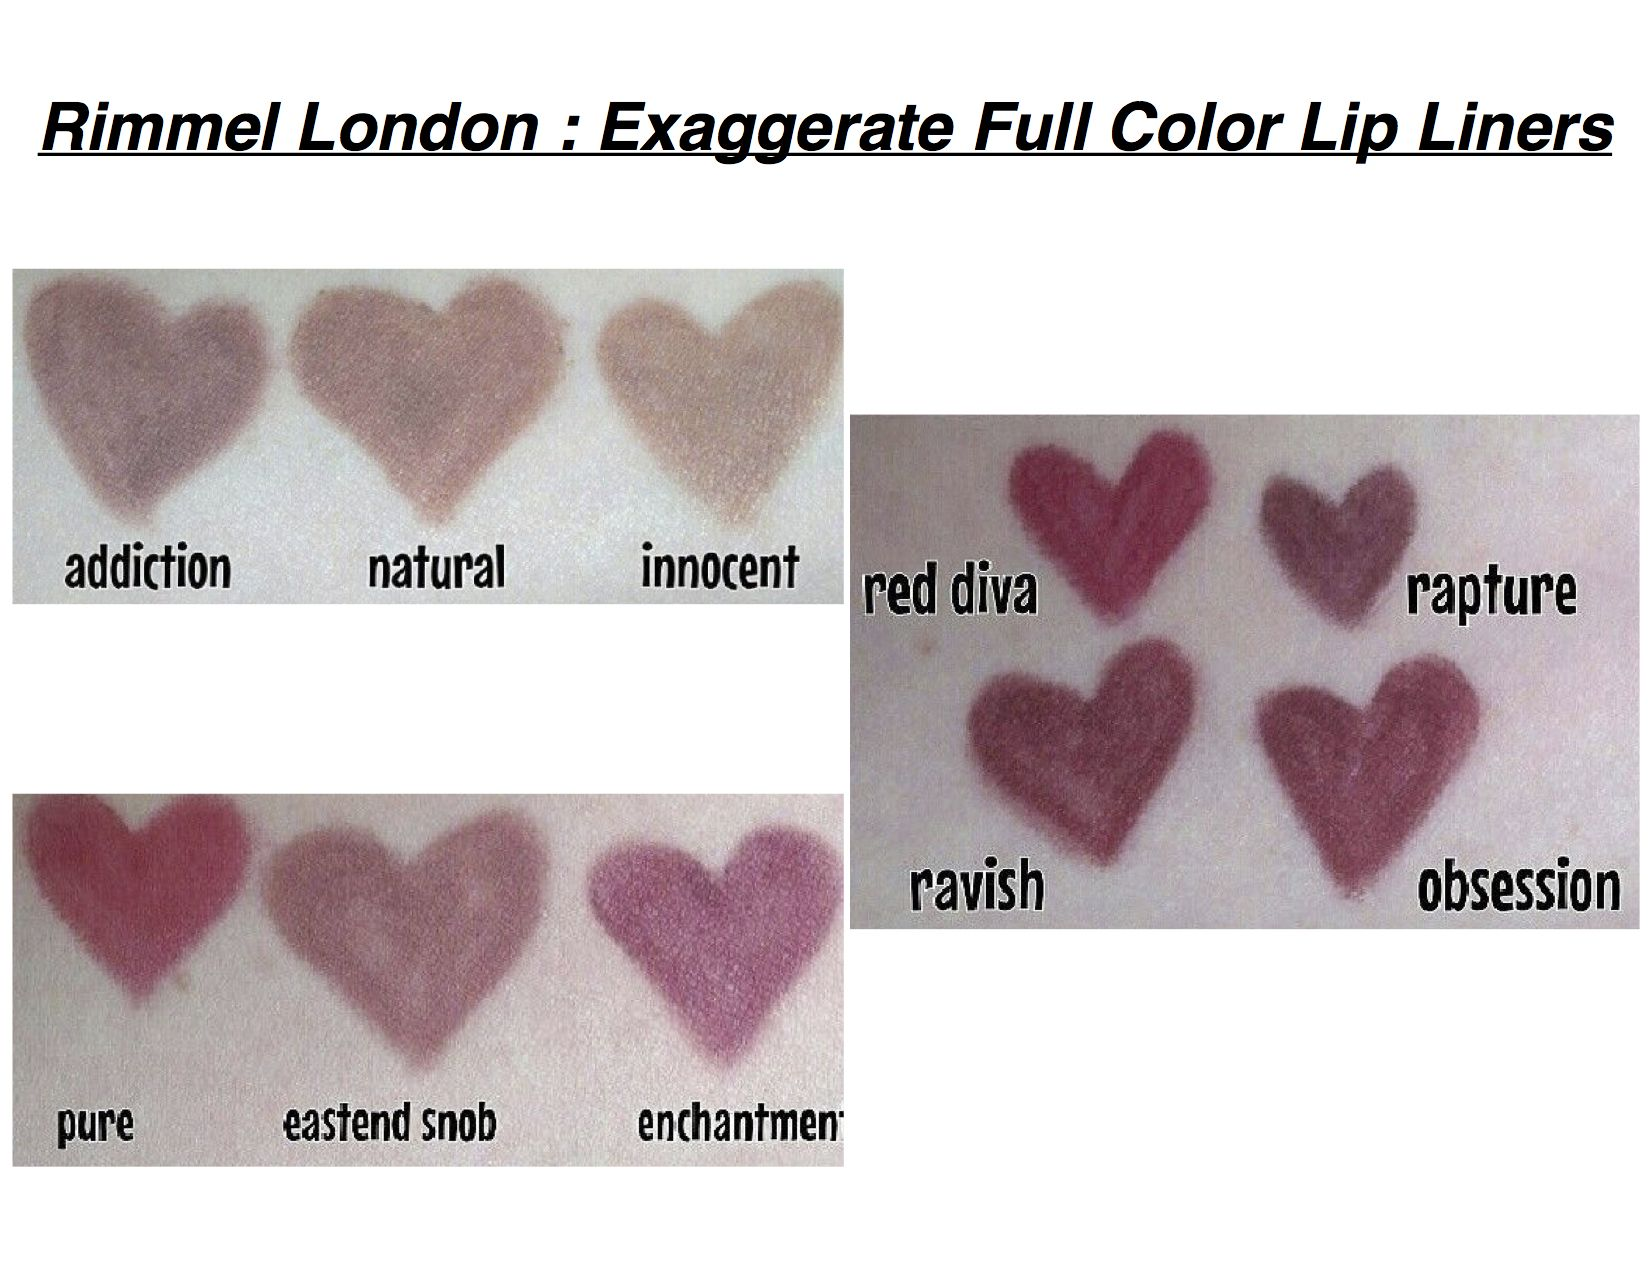 Exaggerate Lip Liner by Rimmel #19